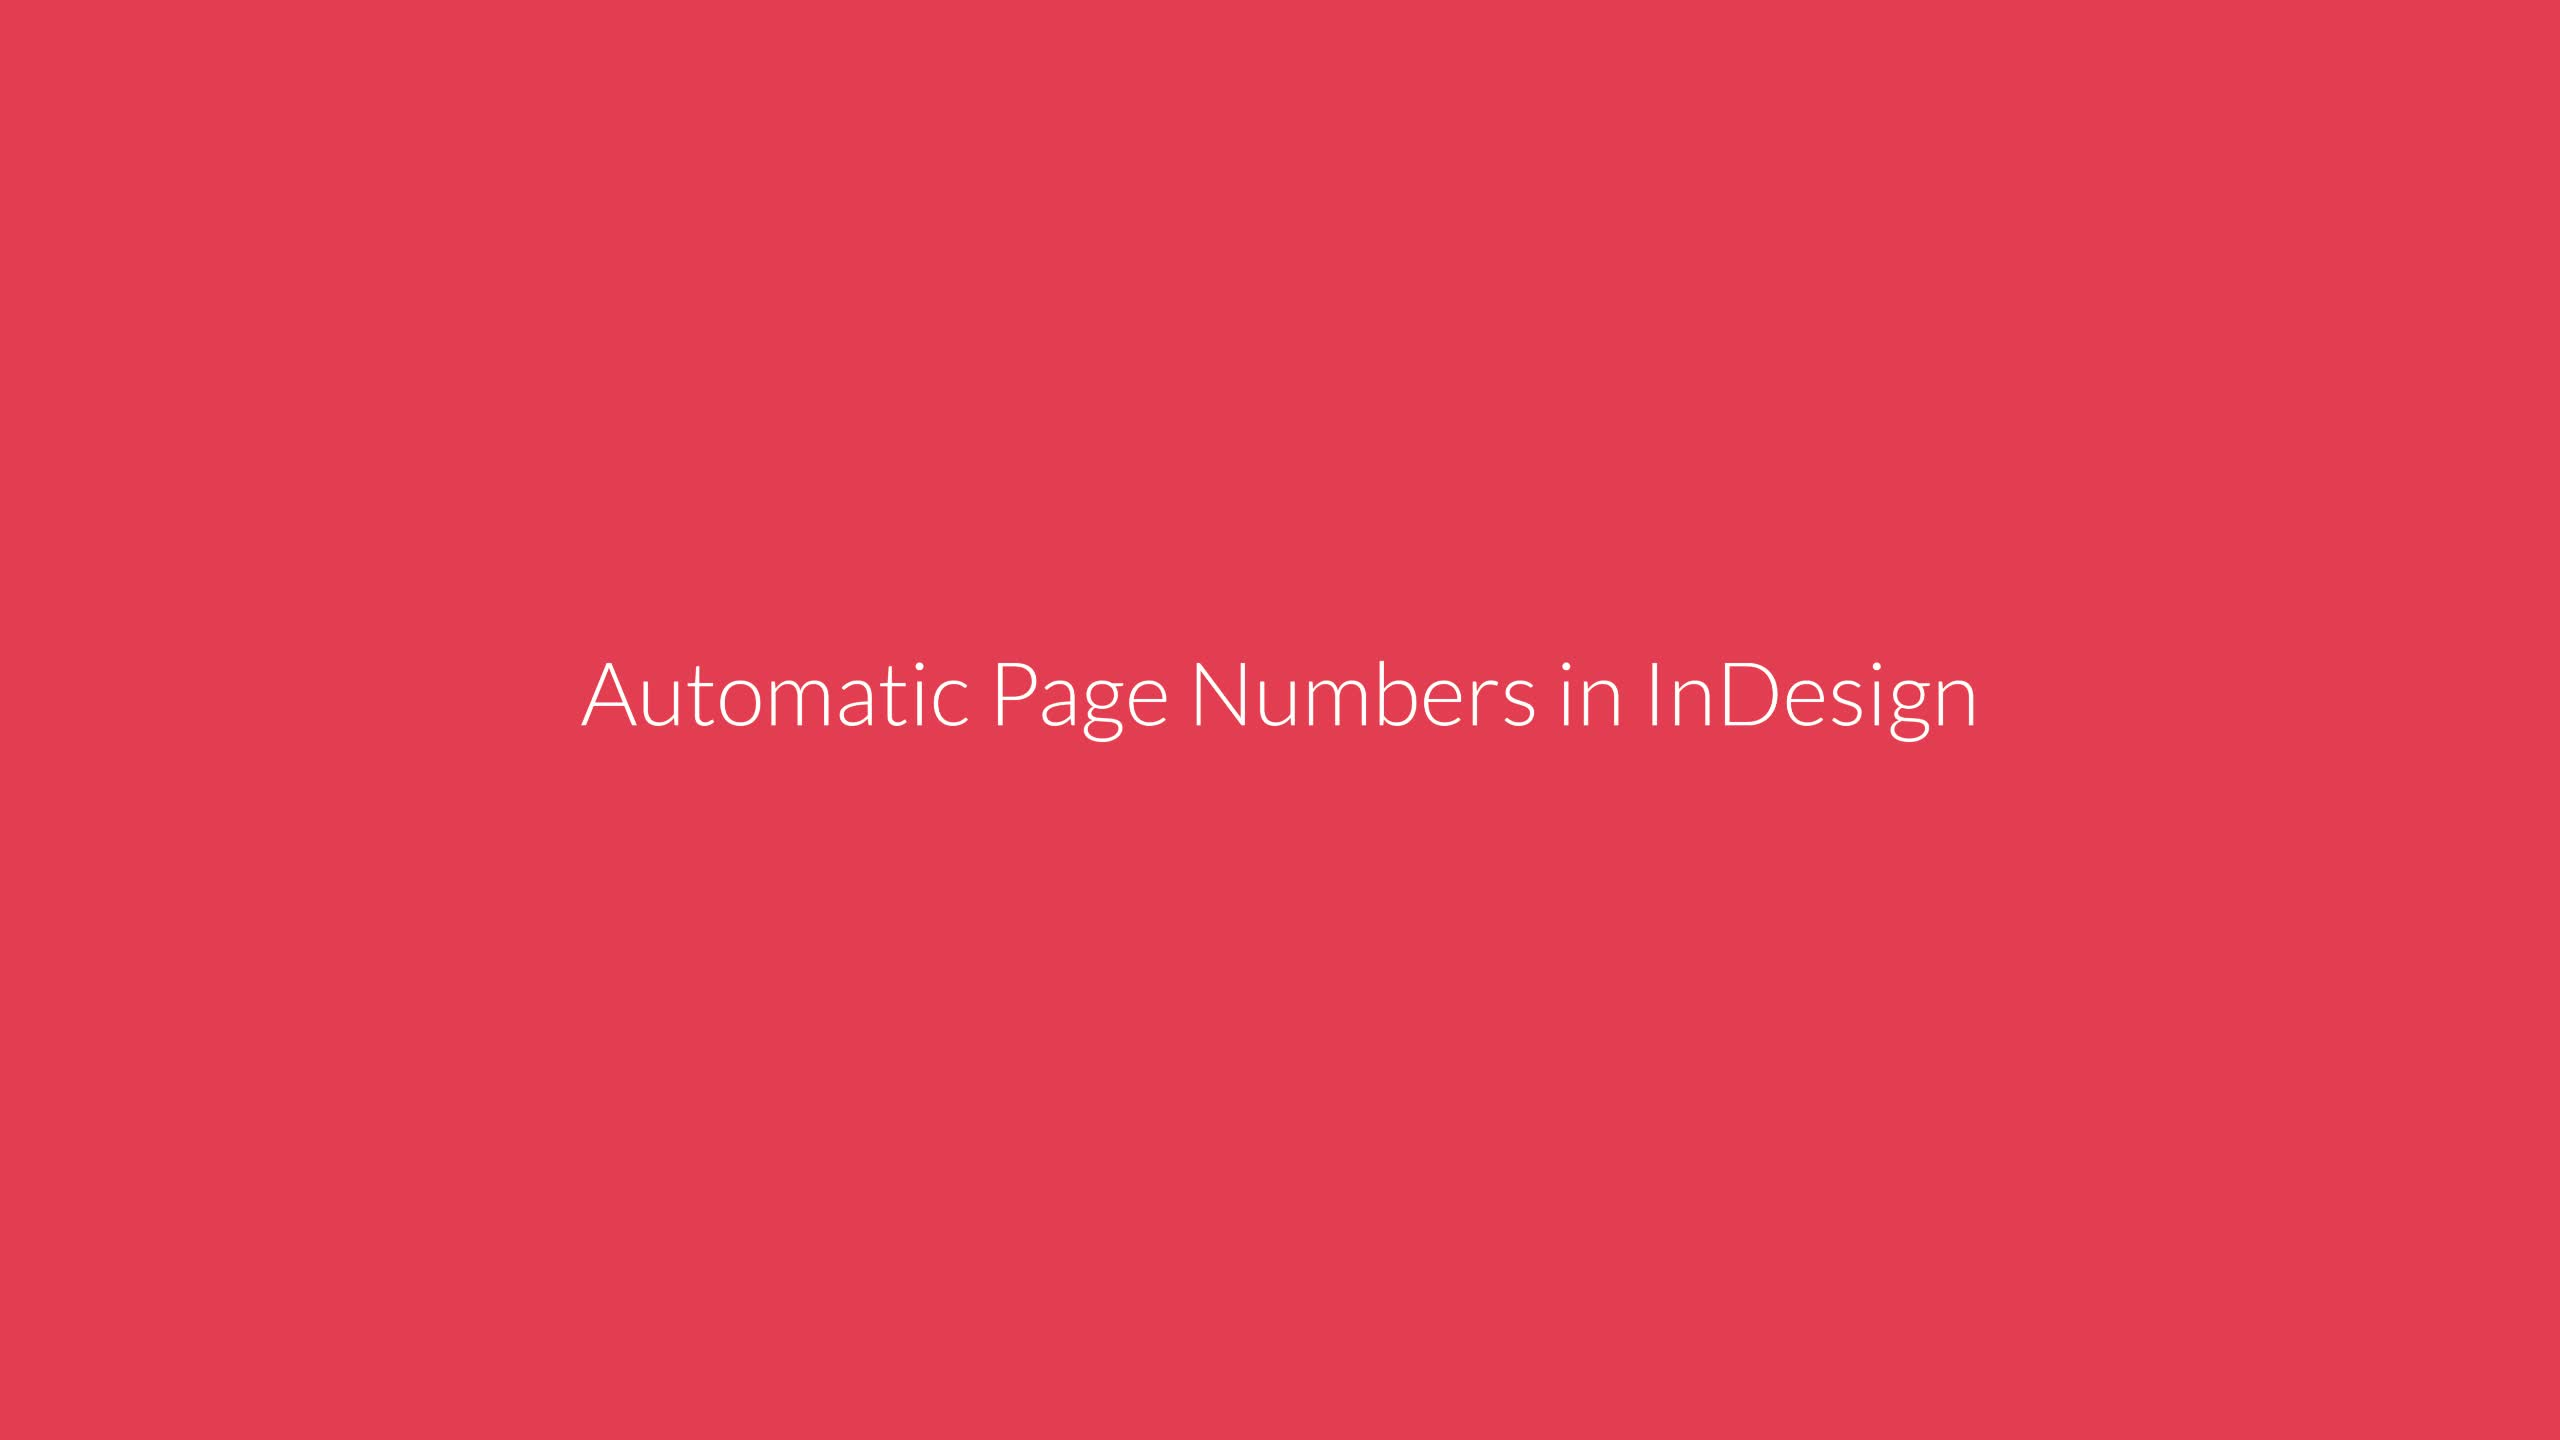 Automatic Page Number in InDesign